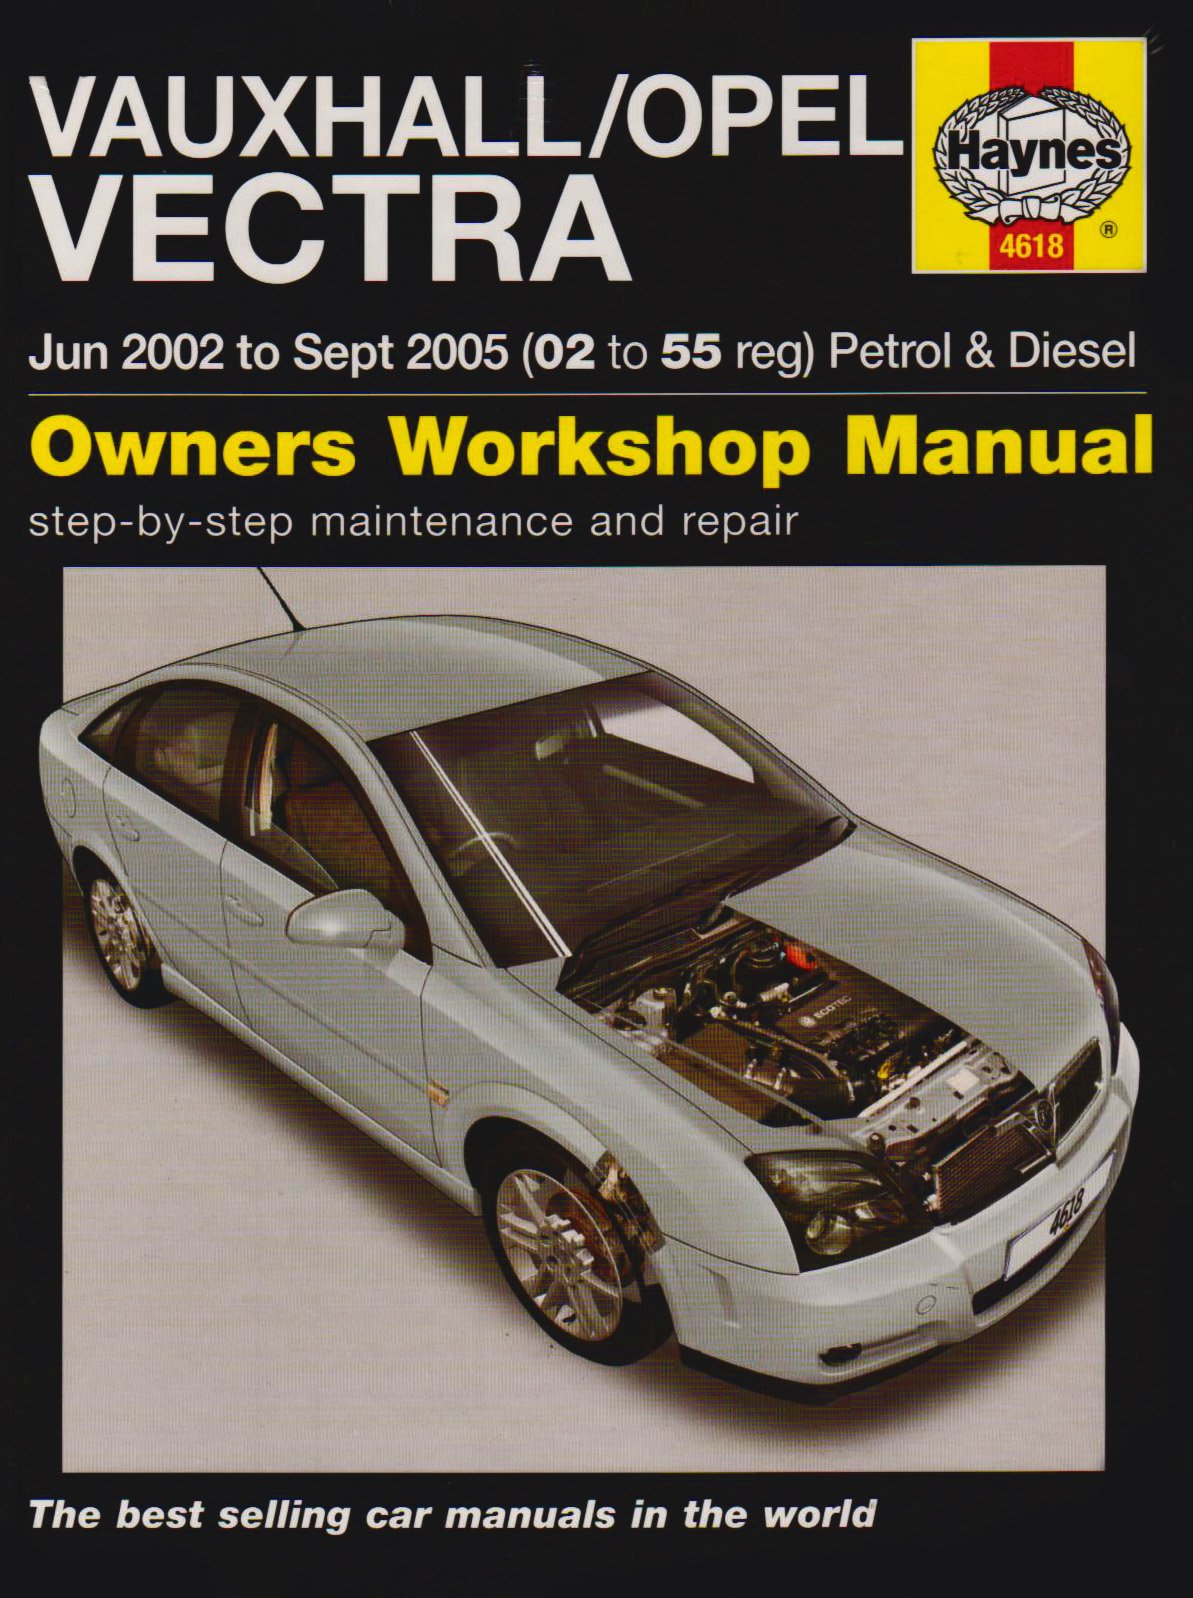 Vauxhall/Opel Vectra Petrol and Diesel Service and Repair Manual: 2002-2005  (Service & repair manuals): Amazon.co.uk: John S. Mead: 9781844256181: Books